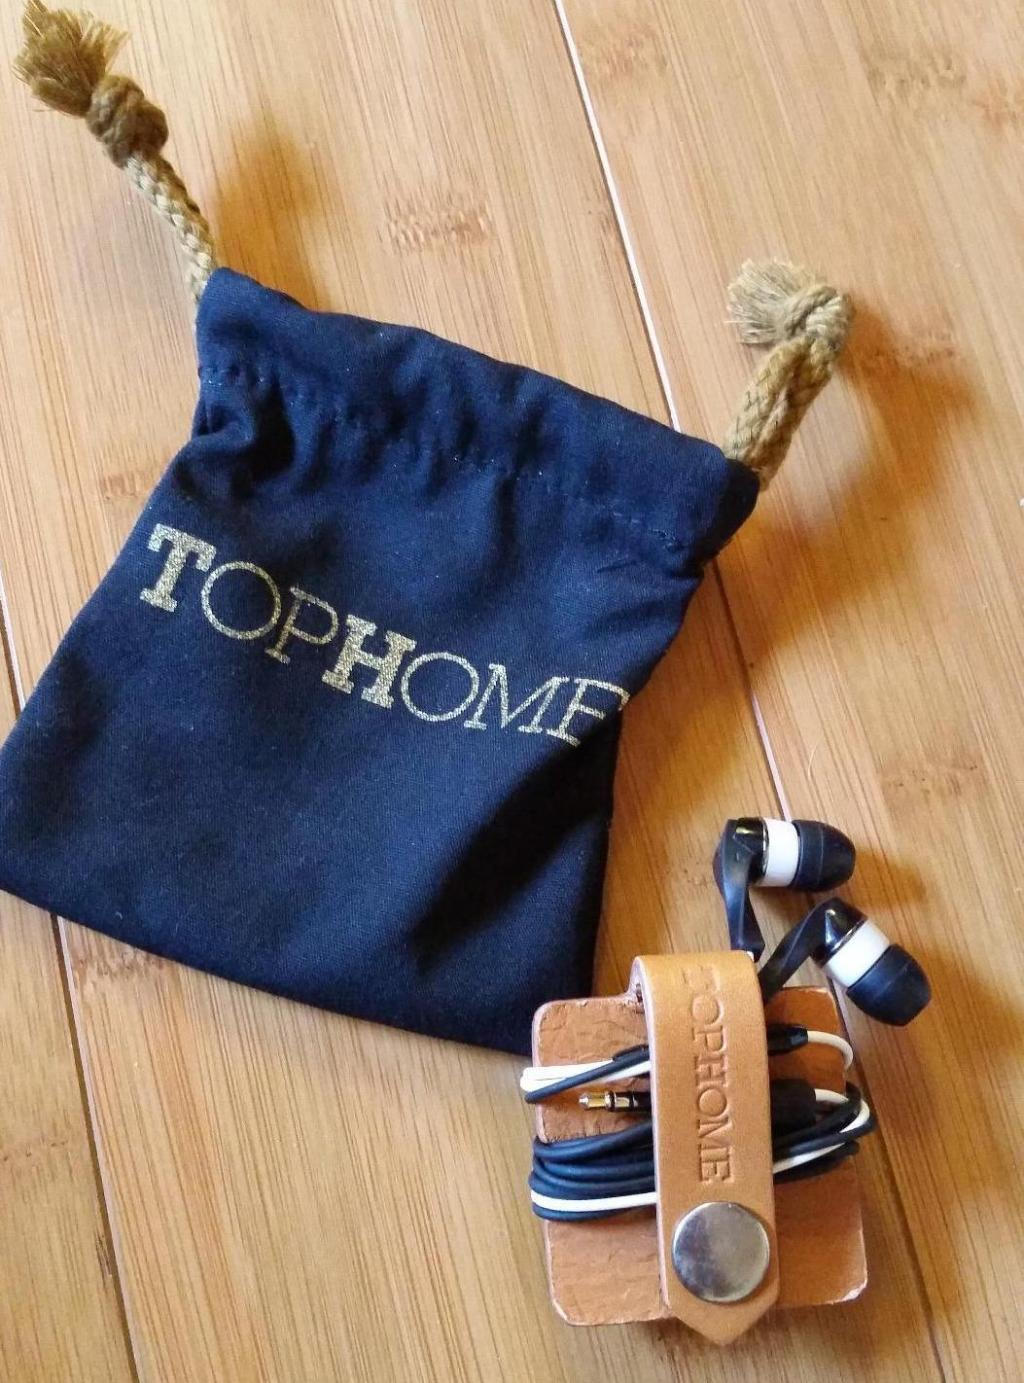 TopHome Earbud Holder shown with cloth sack